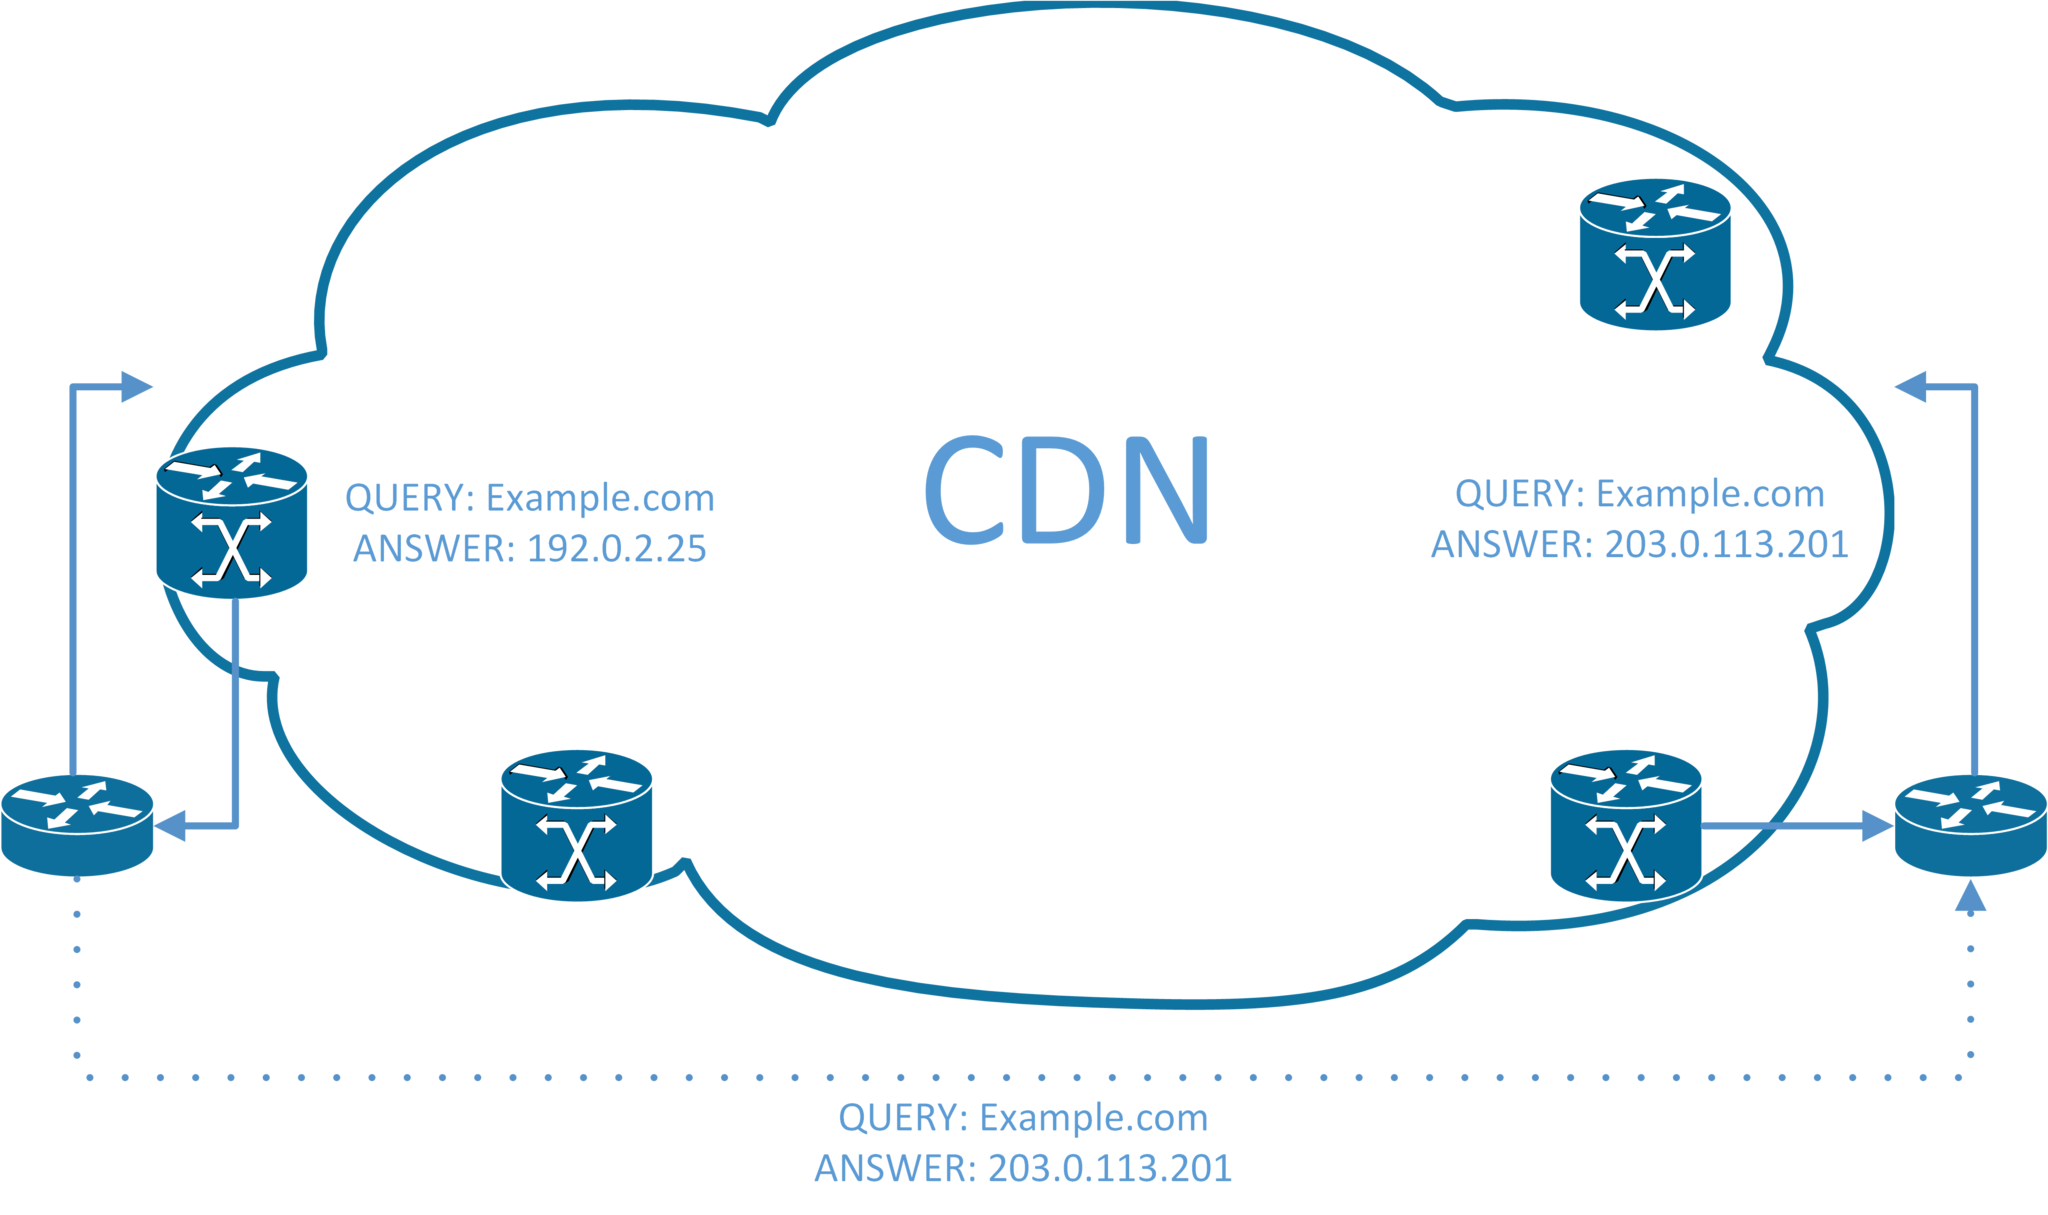 CDN Illustration, Servers at either side and DNS queries leading toward them, with a link between the users for an alternate global DNS path.